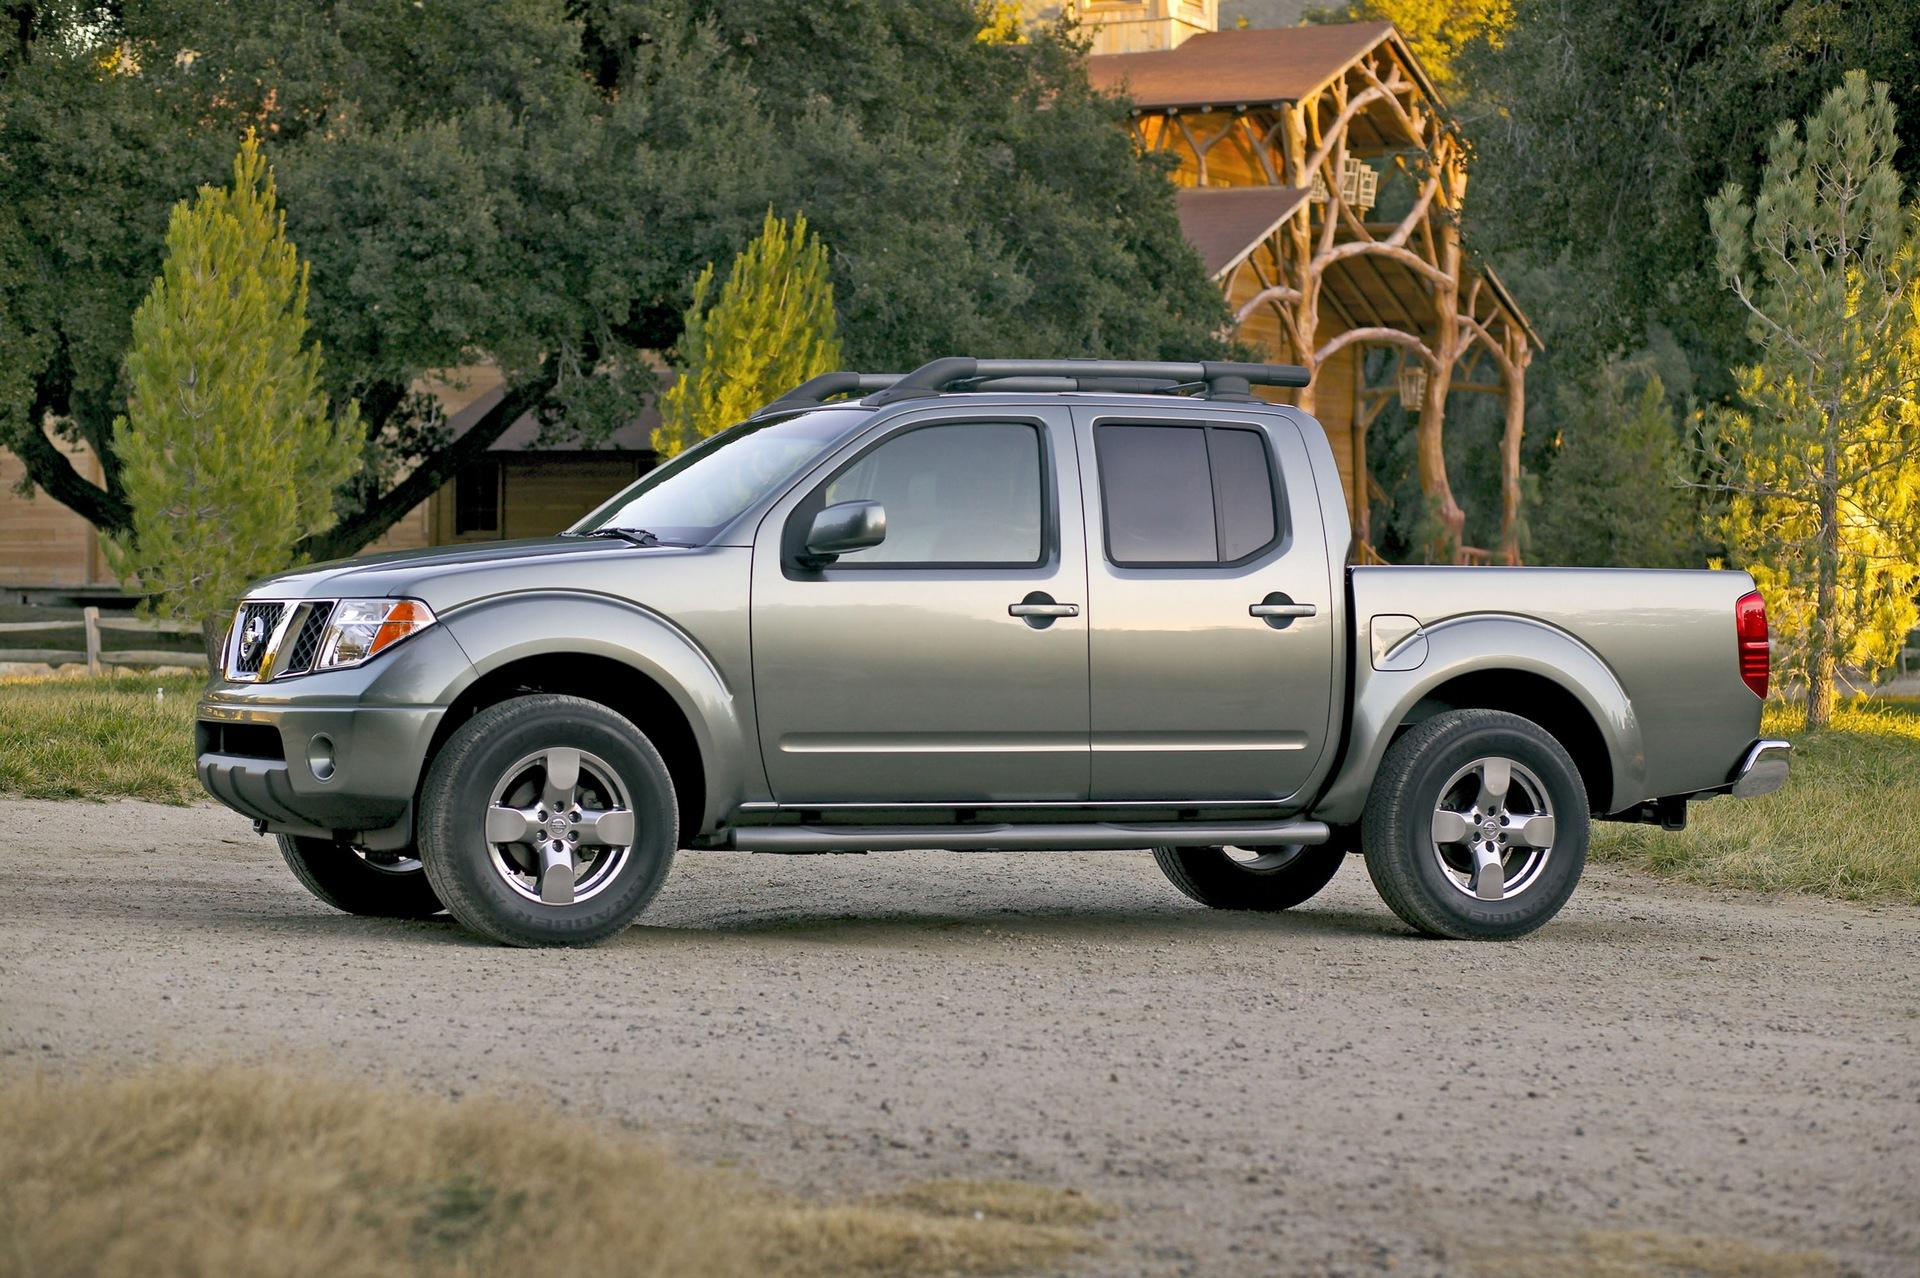 2008 nissan frontier. Black Bedroom Furniture Sets. Home Design Ideas